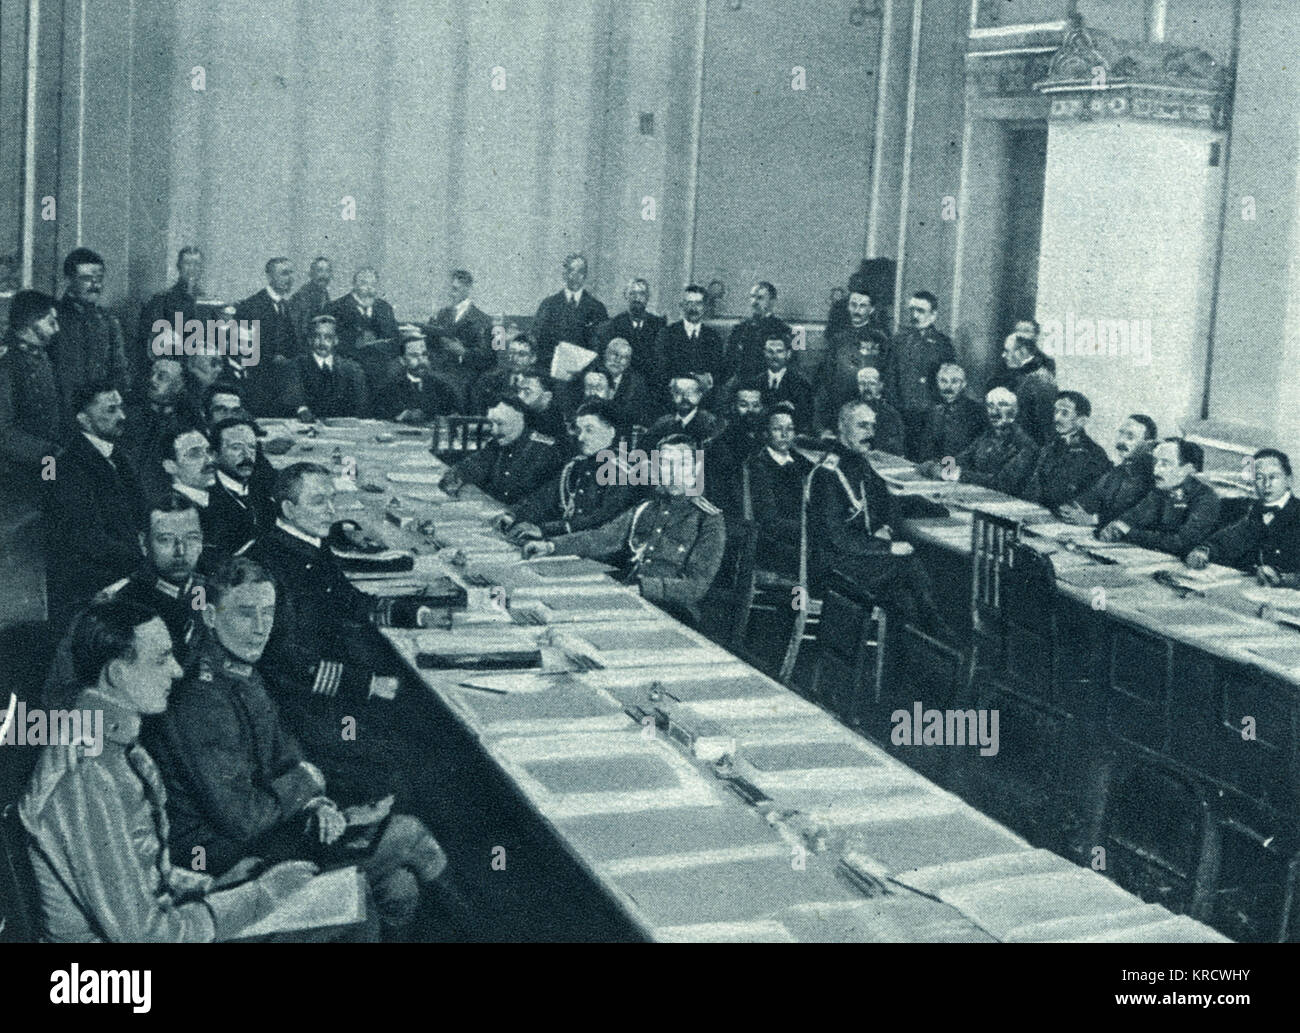 Russo-German talks in progress in the session hall at Brest- Litovsk, as the two sides negotiate over armistice - Stock Image